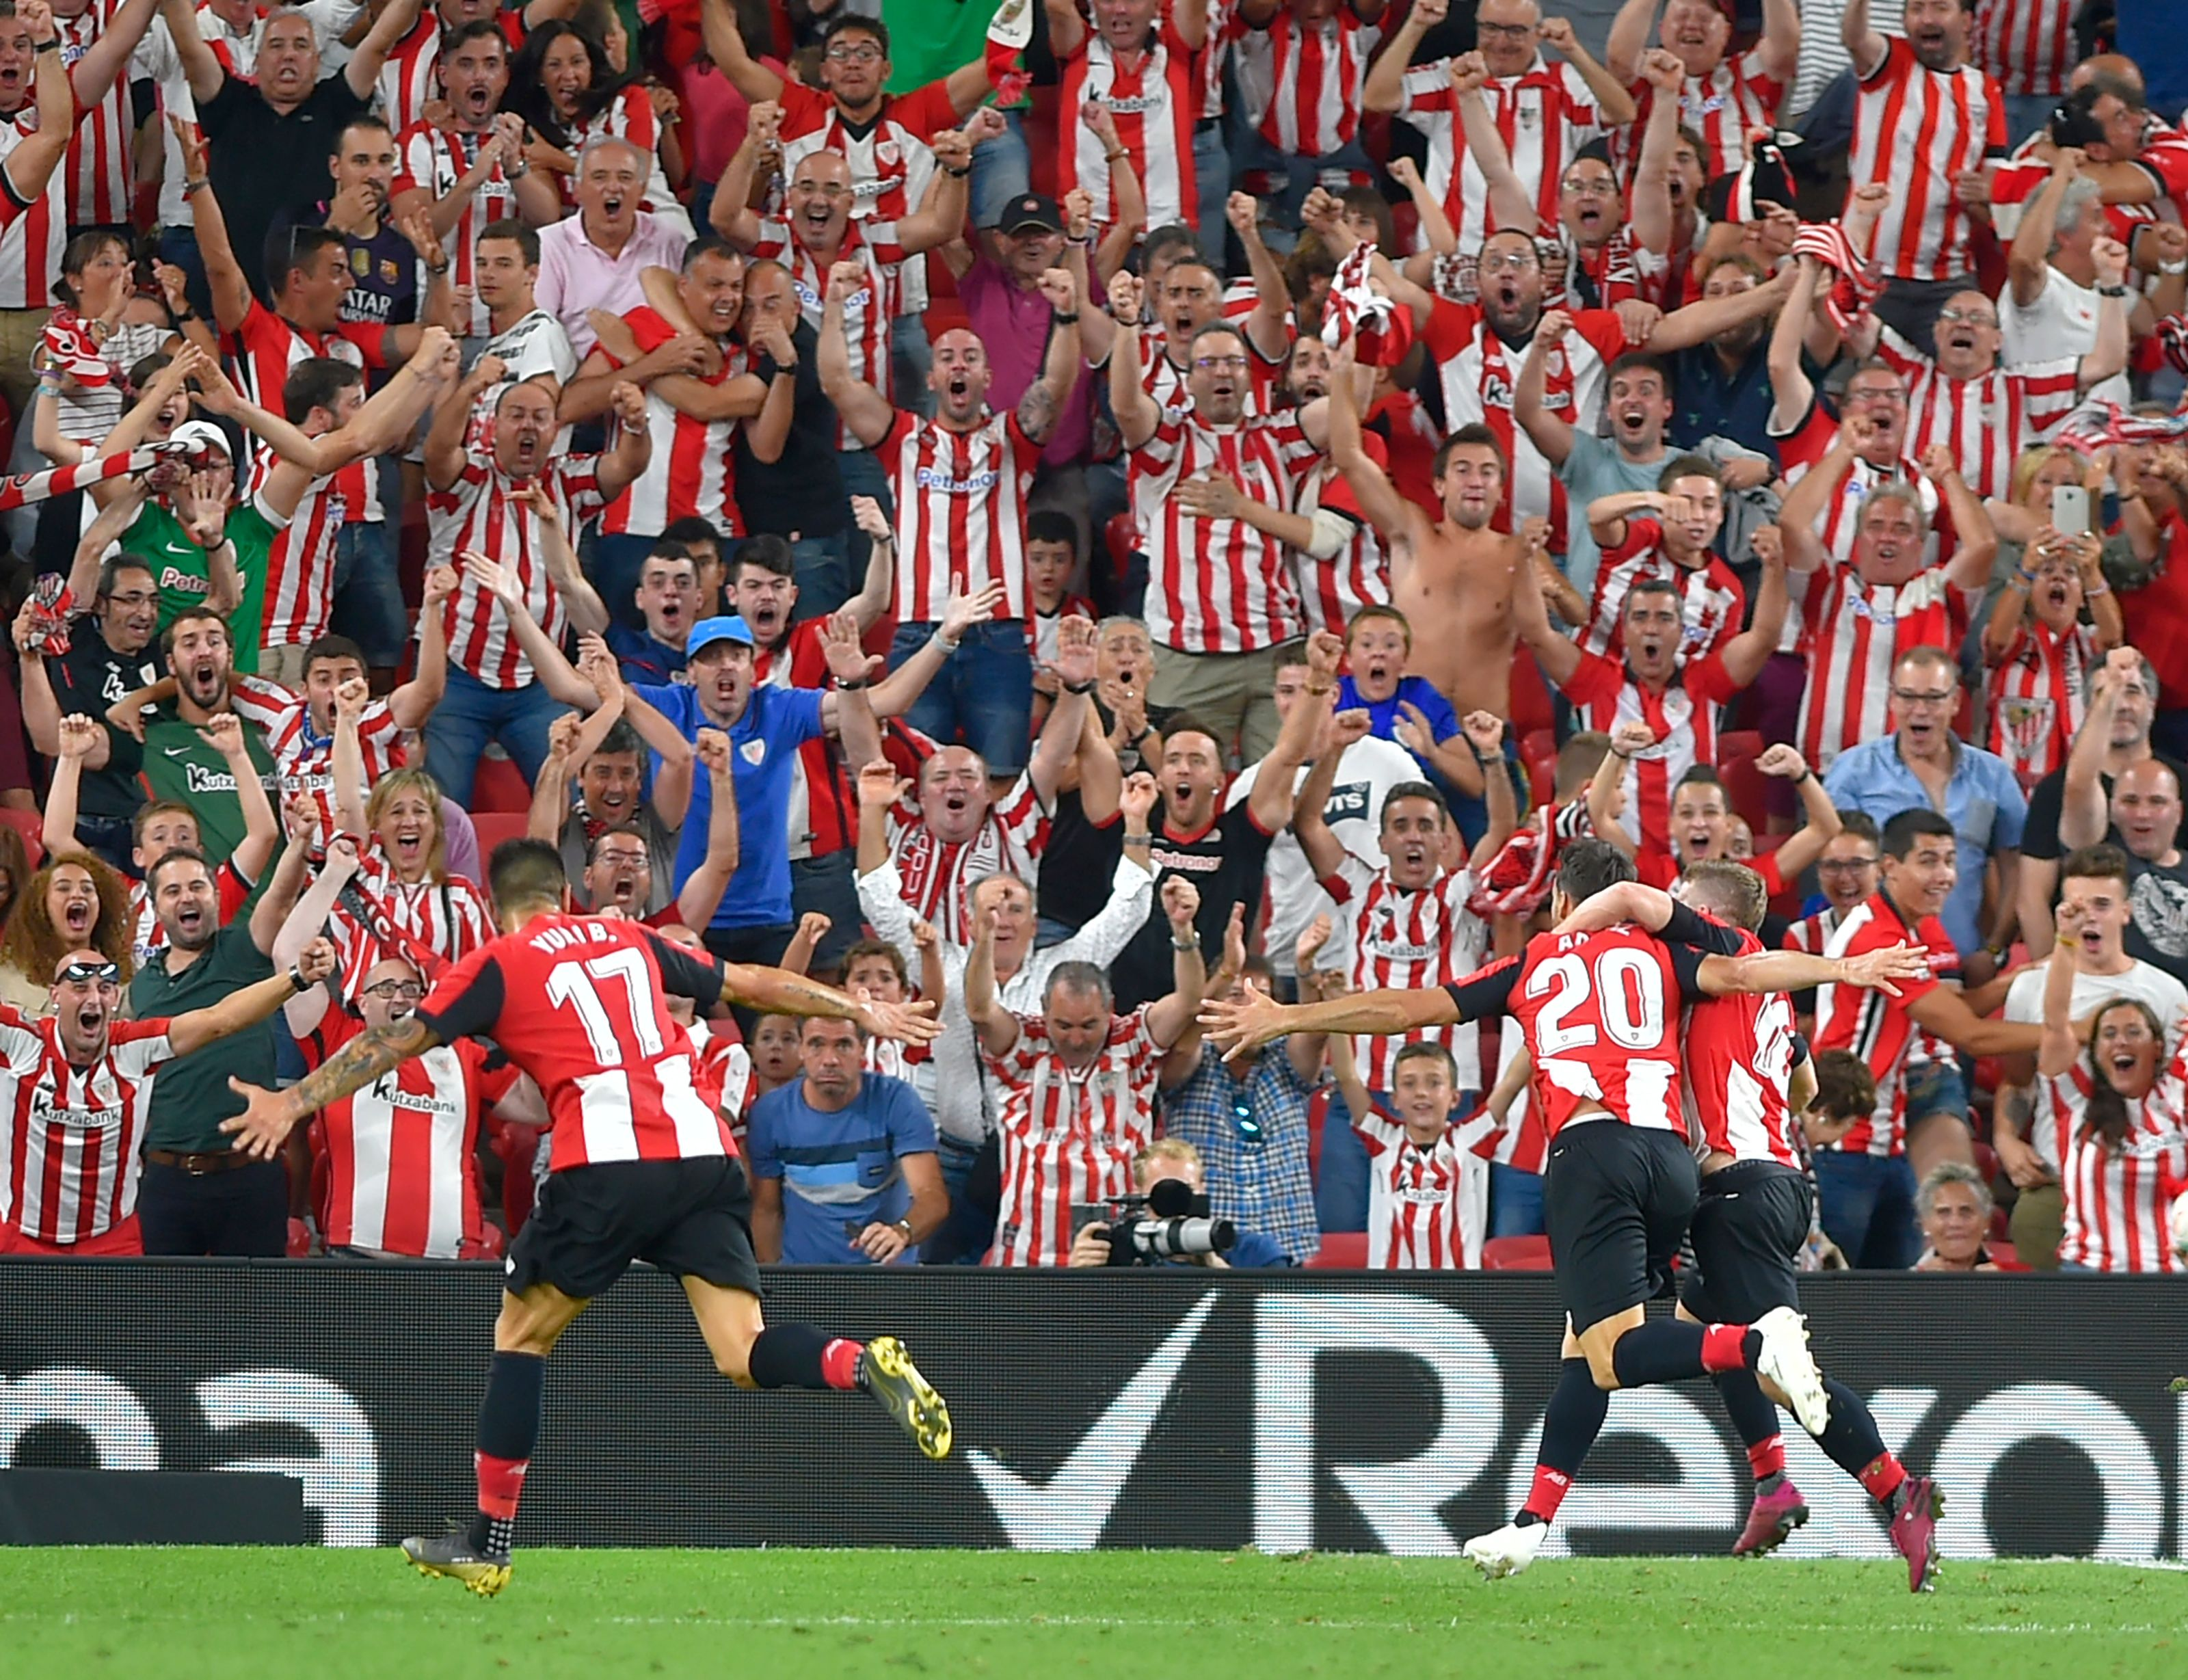 Aritz Aduriz's bicycle kick goal against Barcelona reminded us that the world is full of wonder